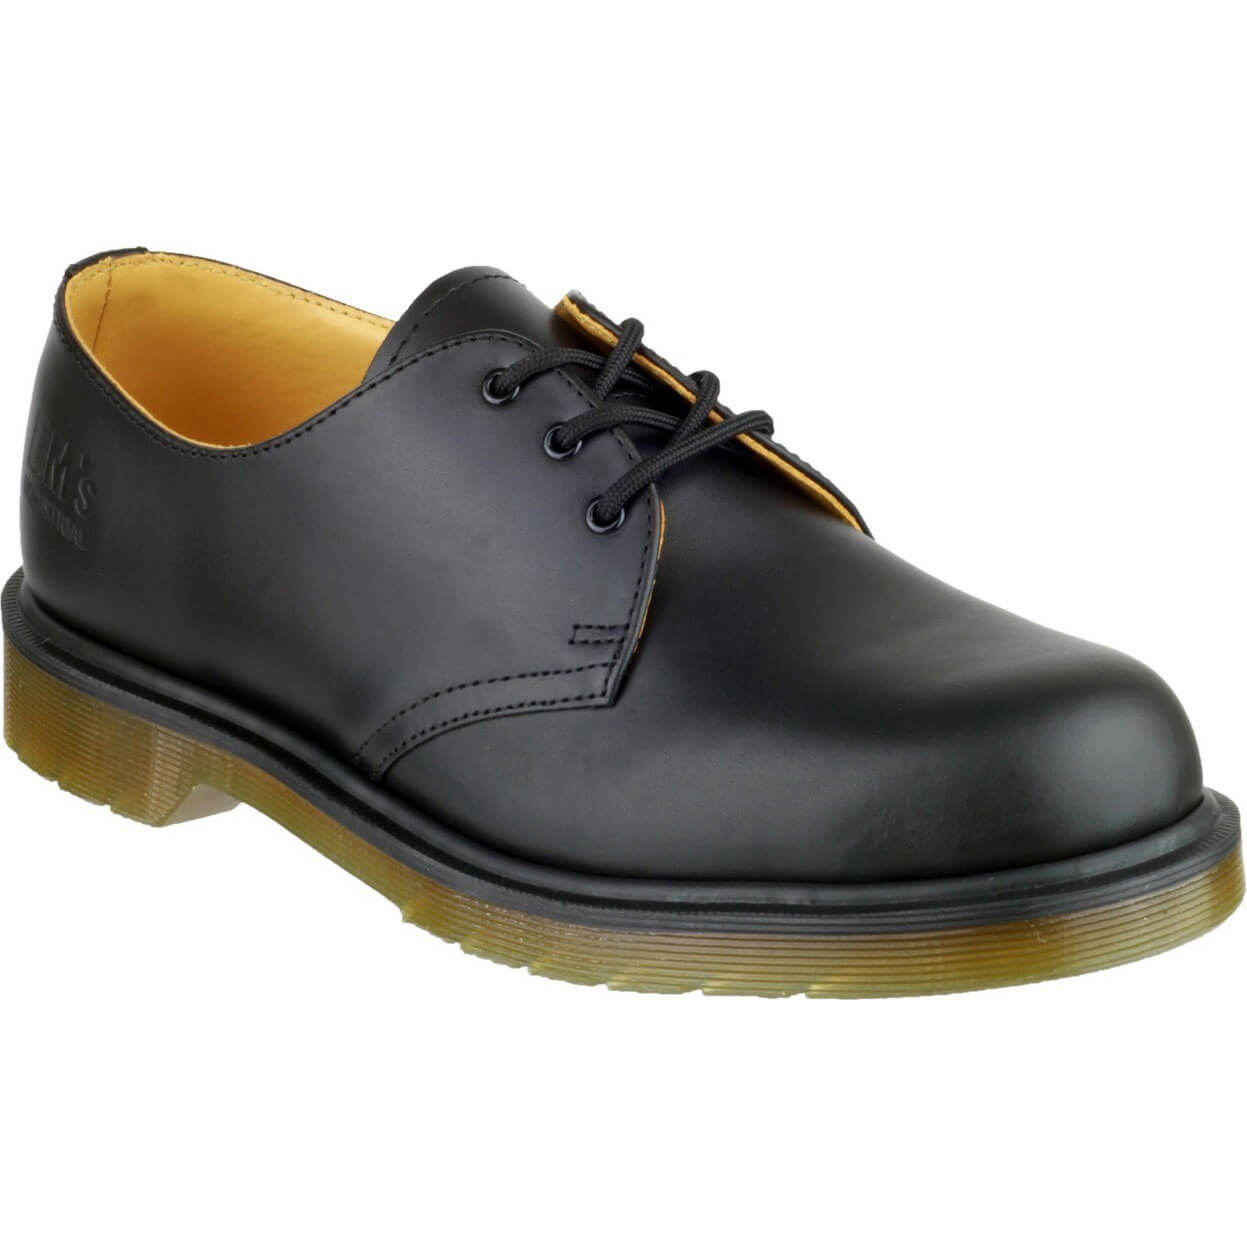 Image of Dr Martens B8249 Lace-Up Leather Shoe Black Size 14